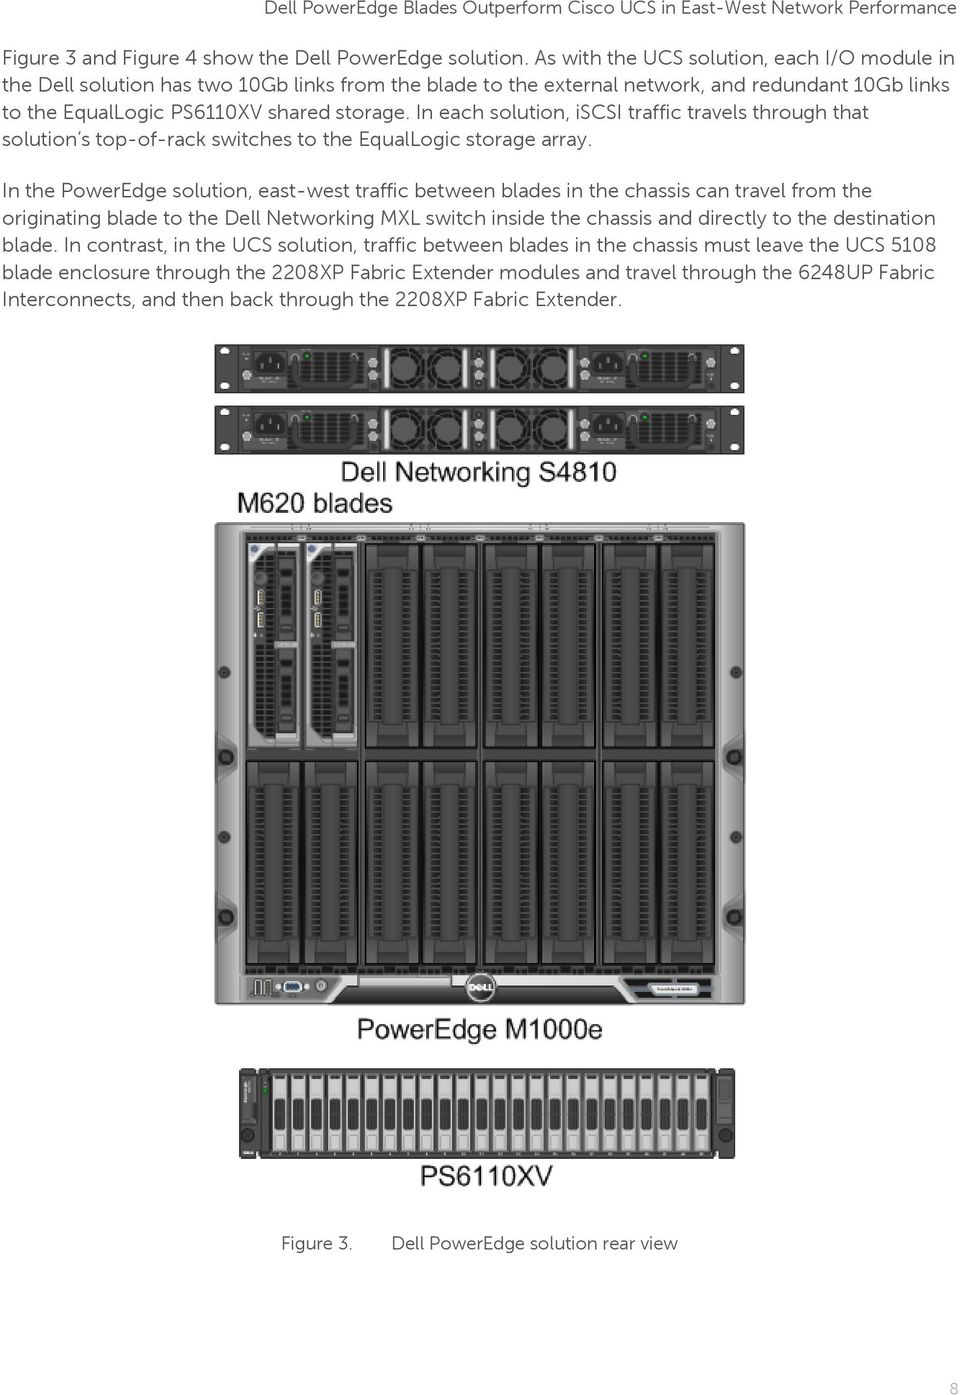 In each solution, iscsi traffic travels through that solution s top-of-rack switches to the EqualLogic storage array.